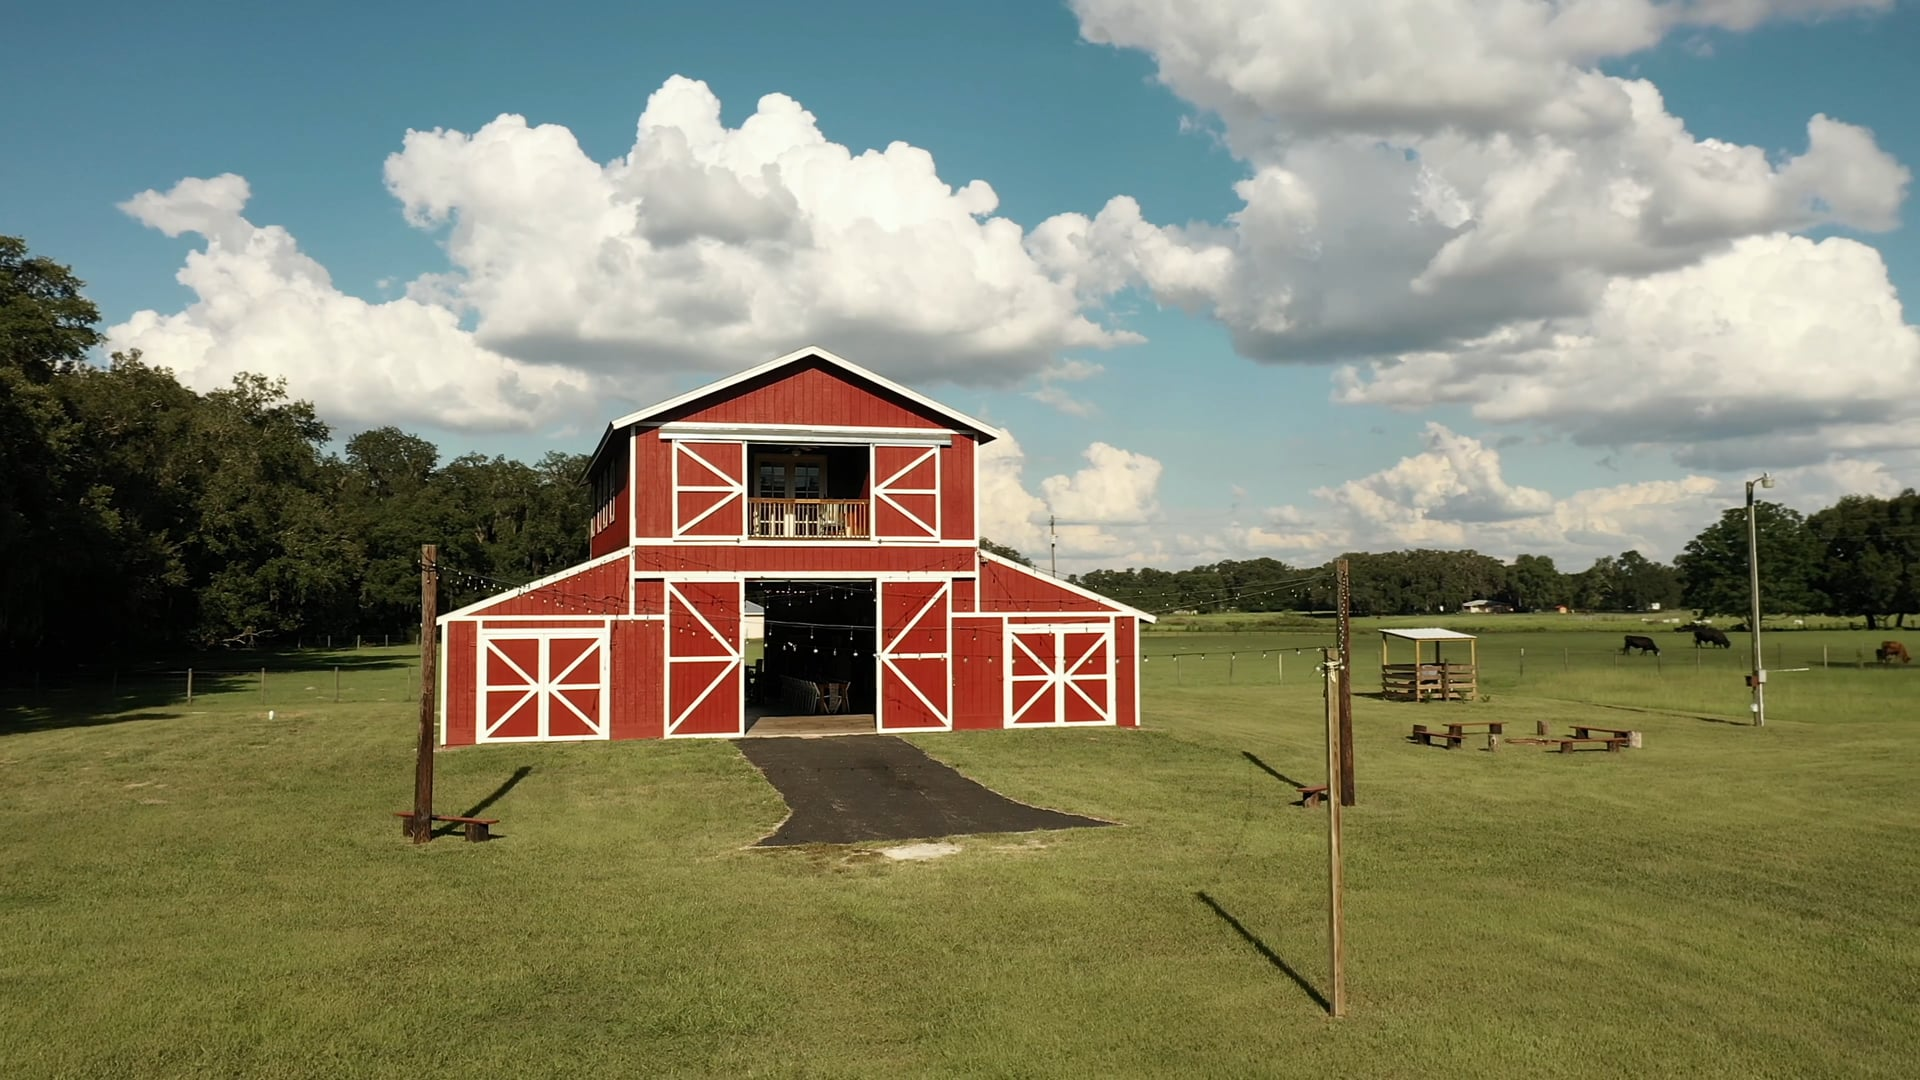 The Red Barn at Bushnell, Fl